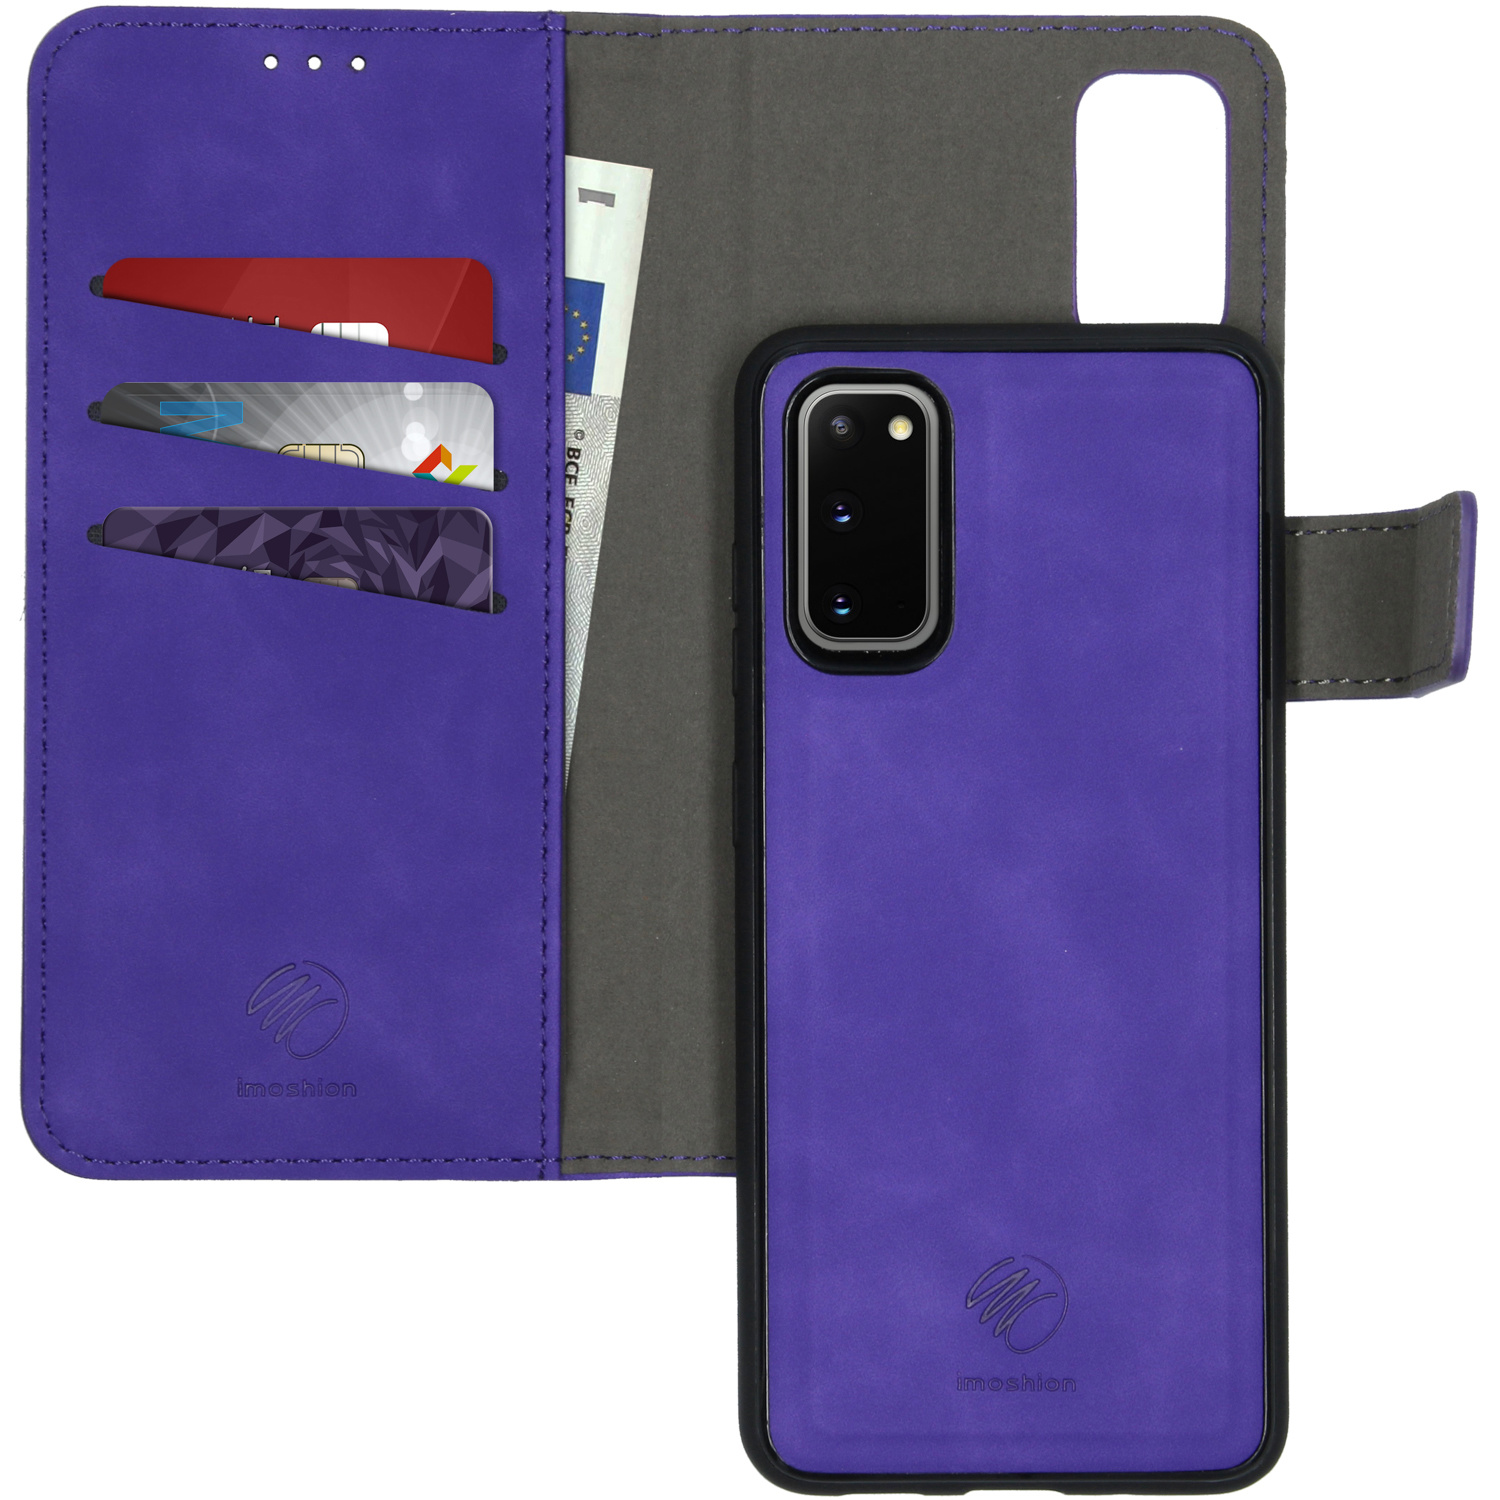 iMoshion Uitneembare 2-in-1 Luxe Booktype Samsung Galaxy S20 - Paars